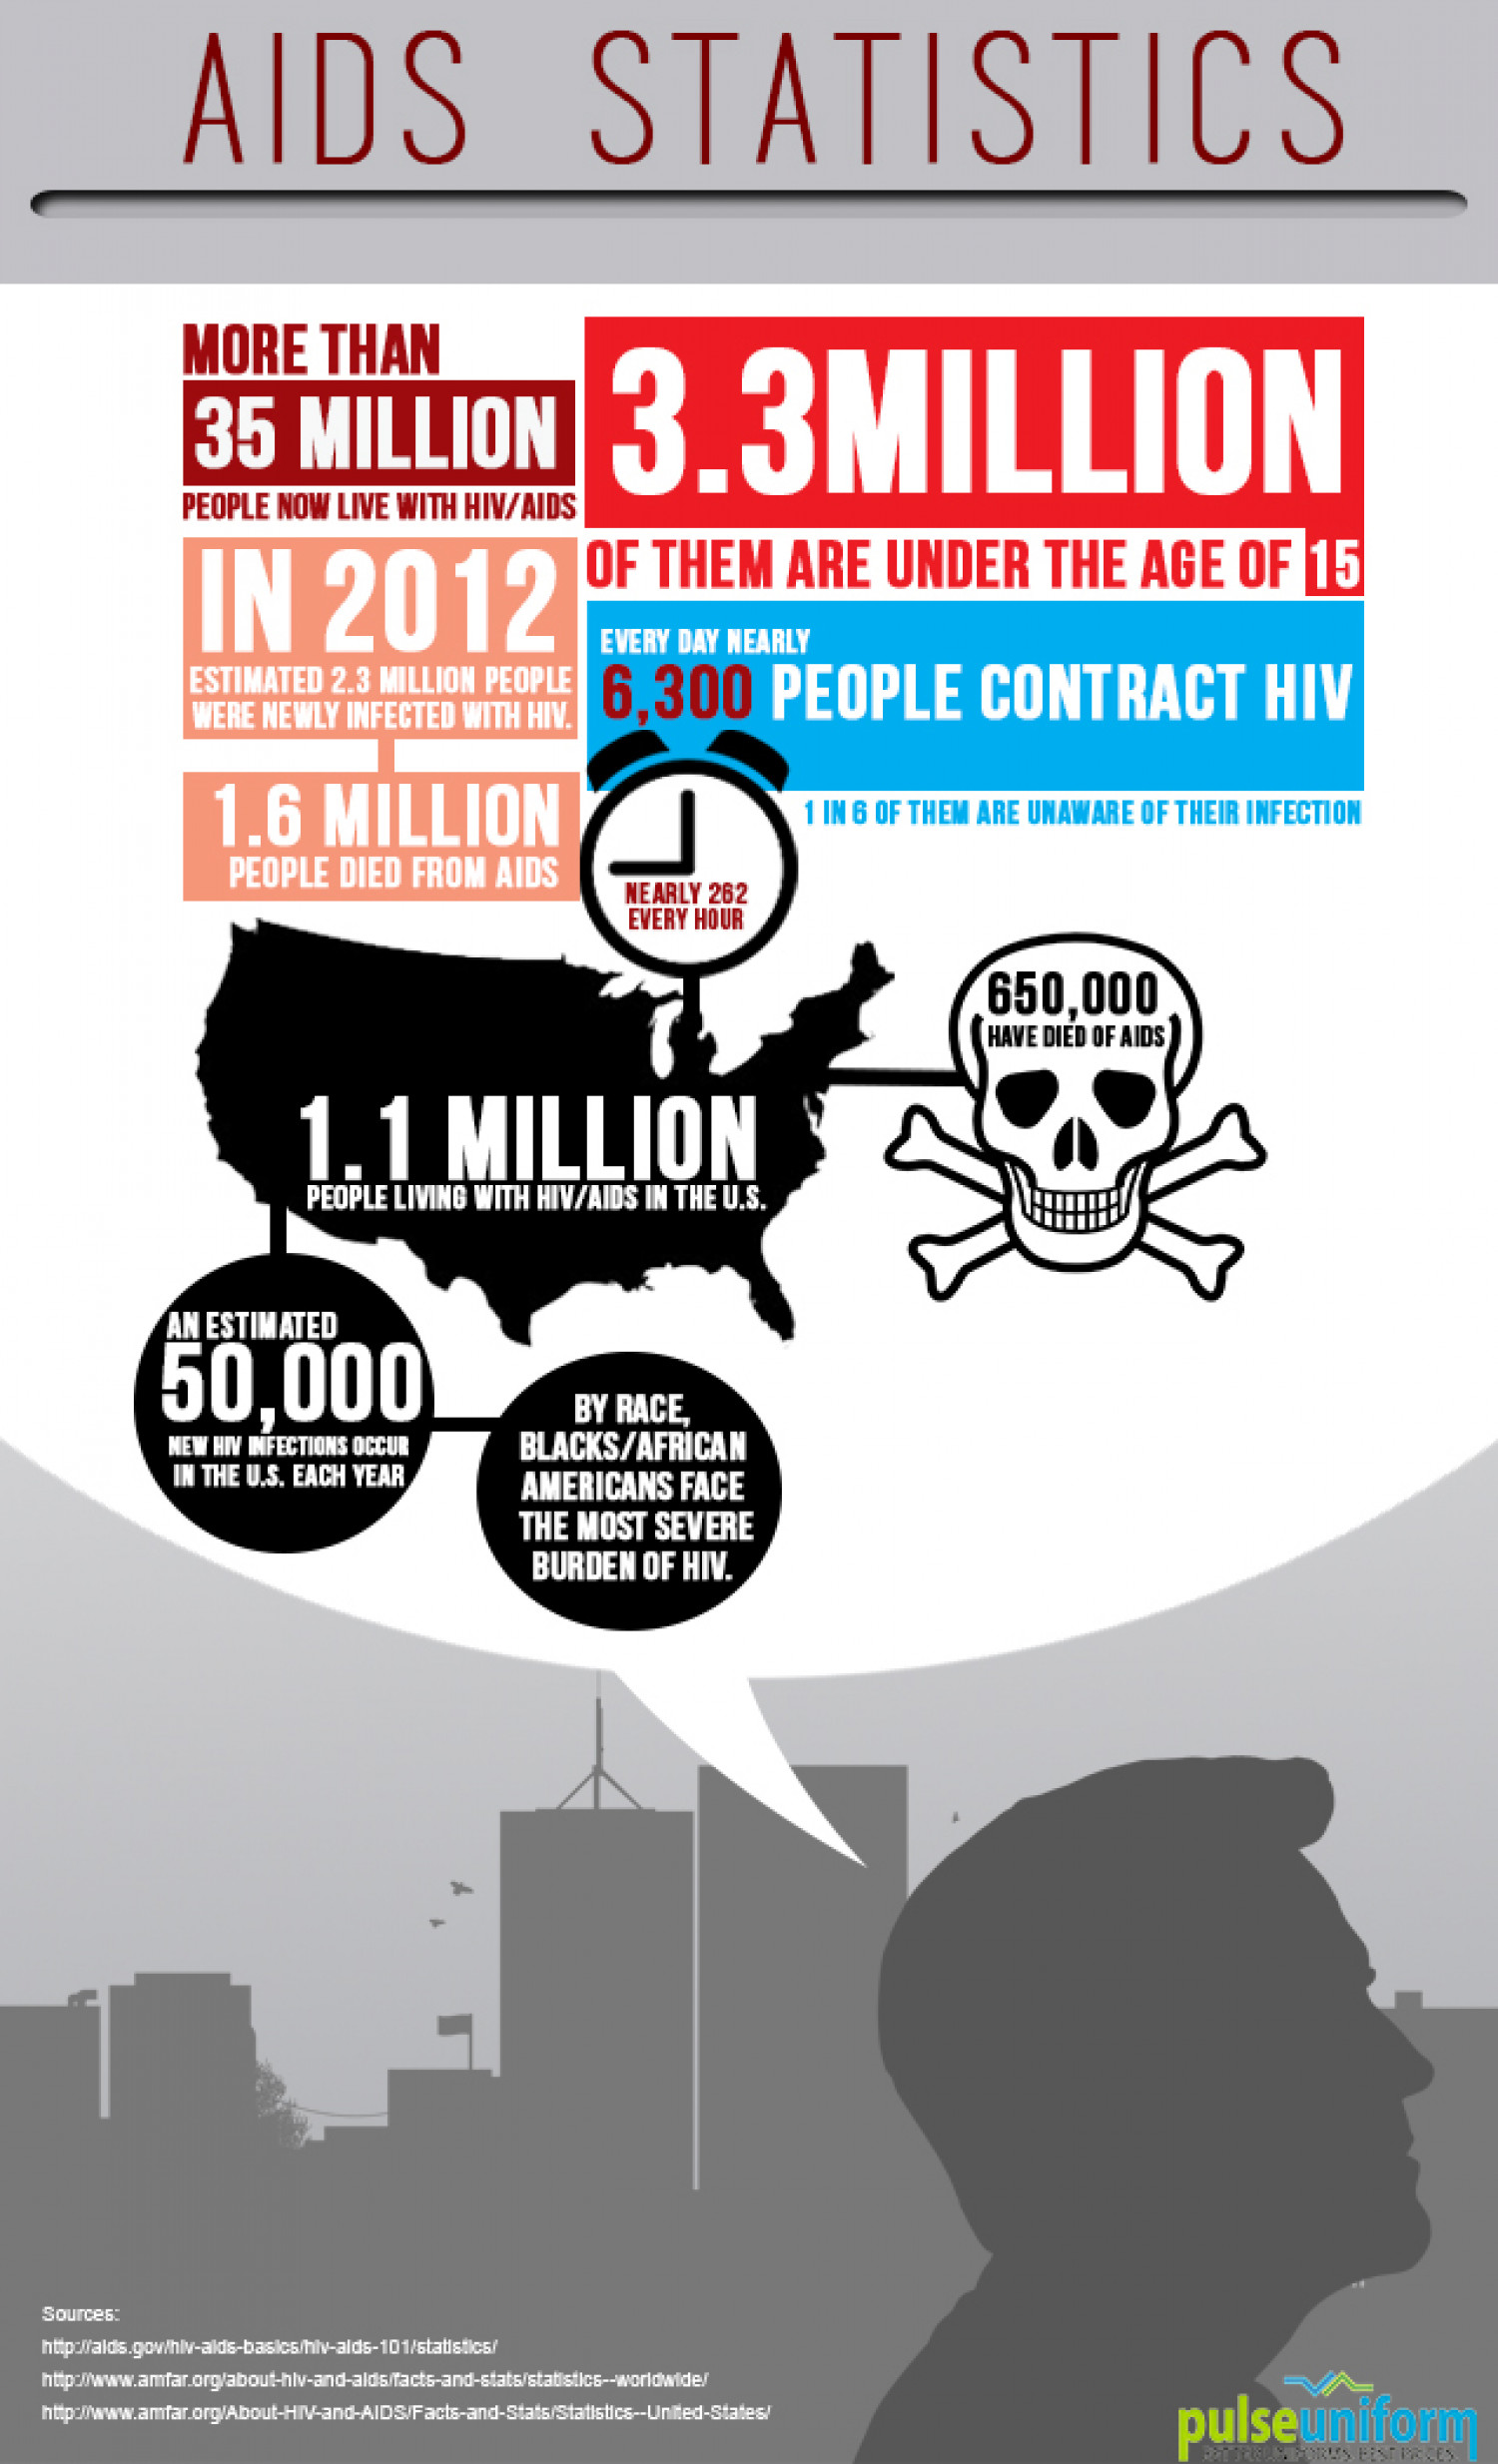 HIV-AIDS Statistics at a Glance Infographic